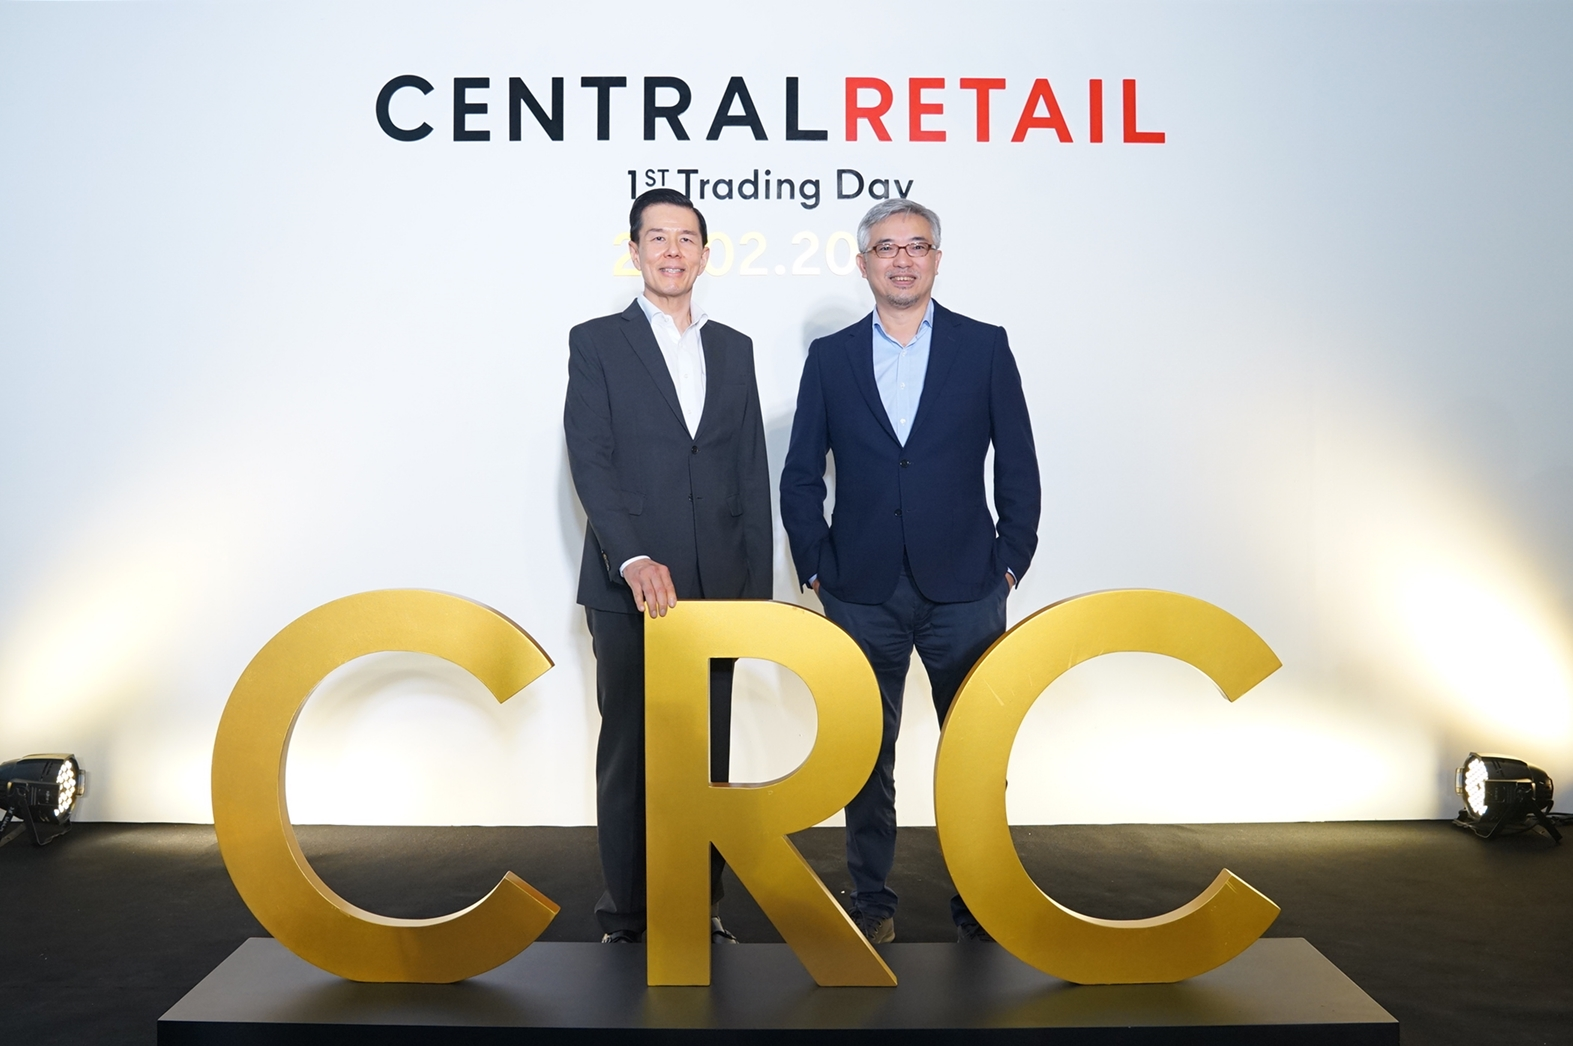 Yol Phokasub, ceo of Central Retail Corporation, left, and Tos Chirathivat, ceo of Central Group, right.